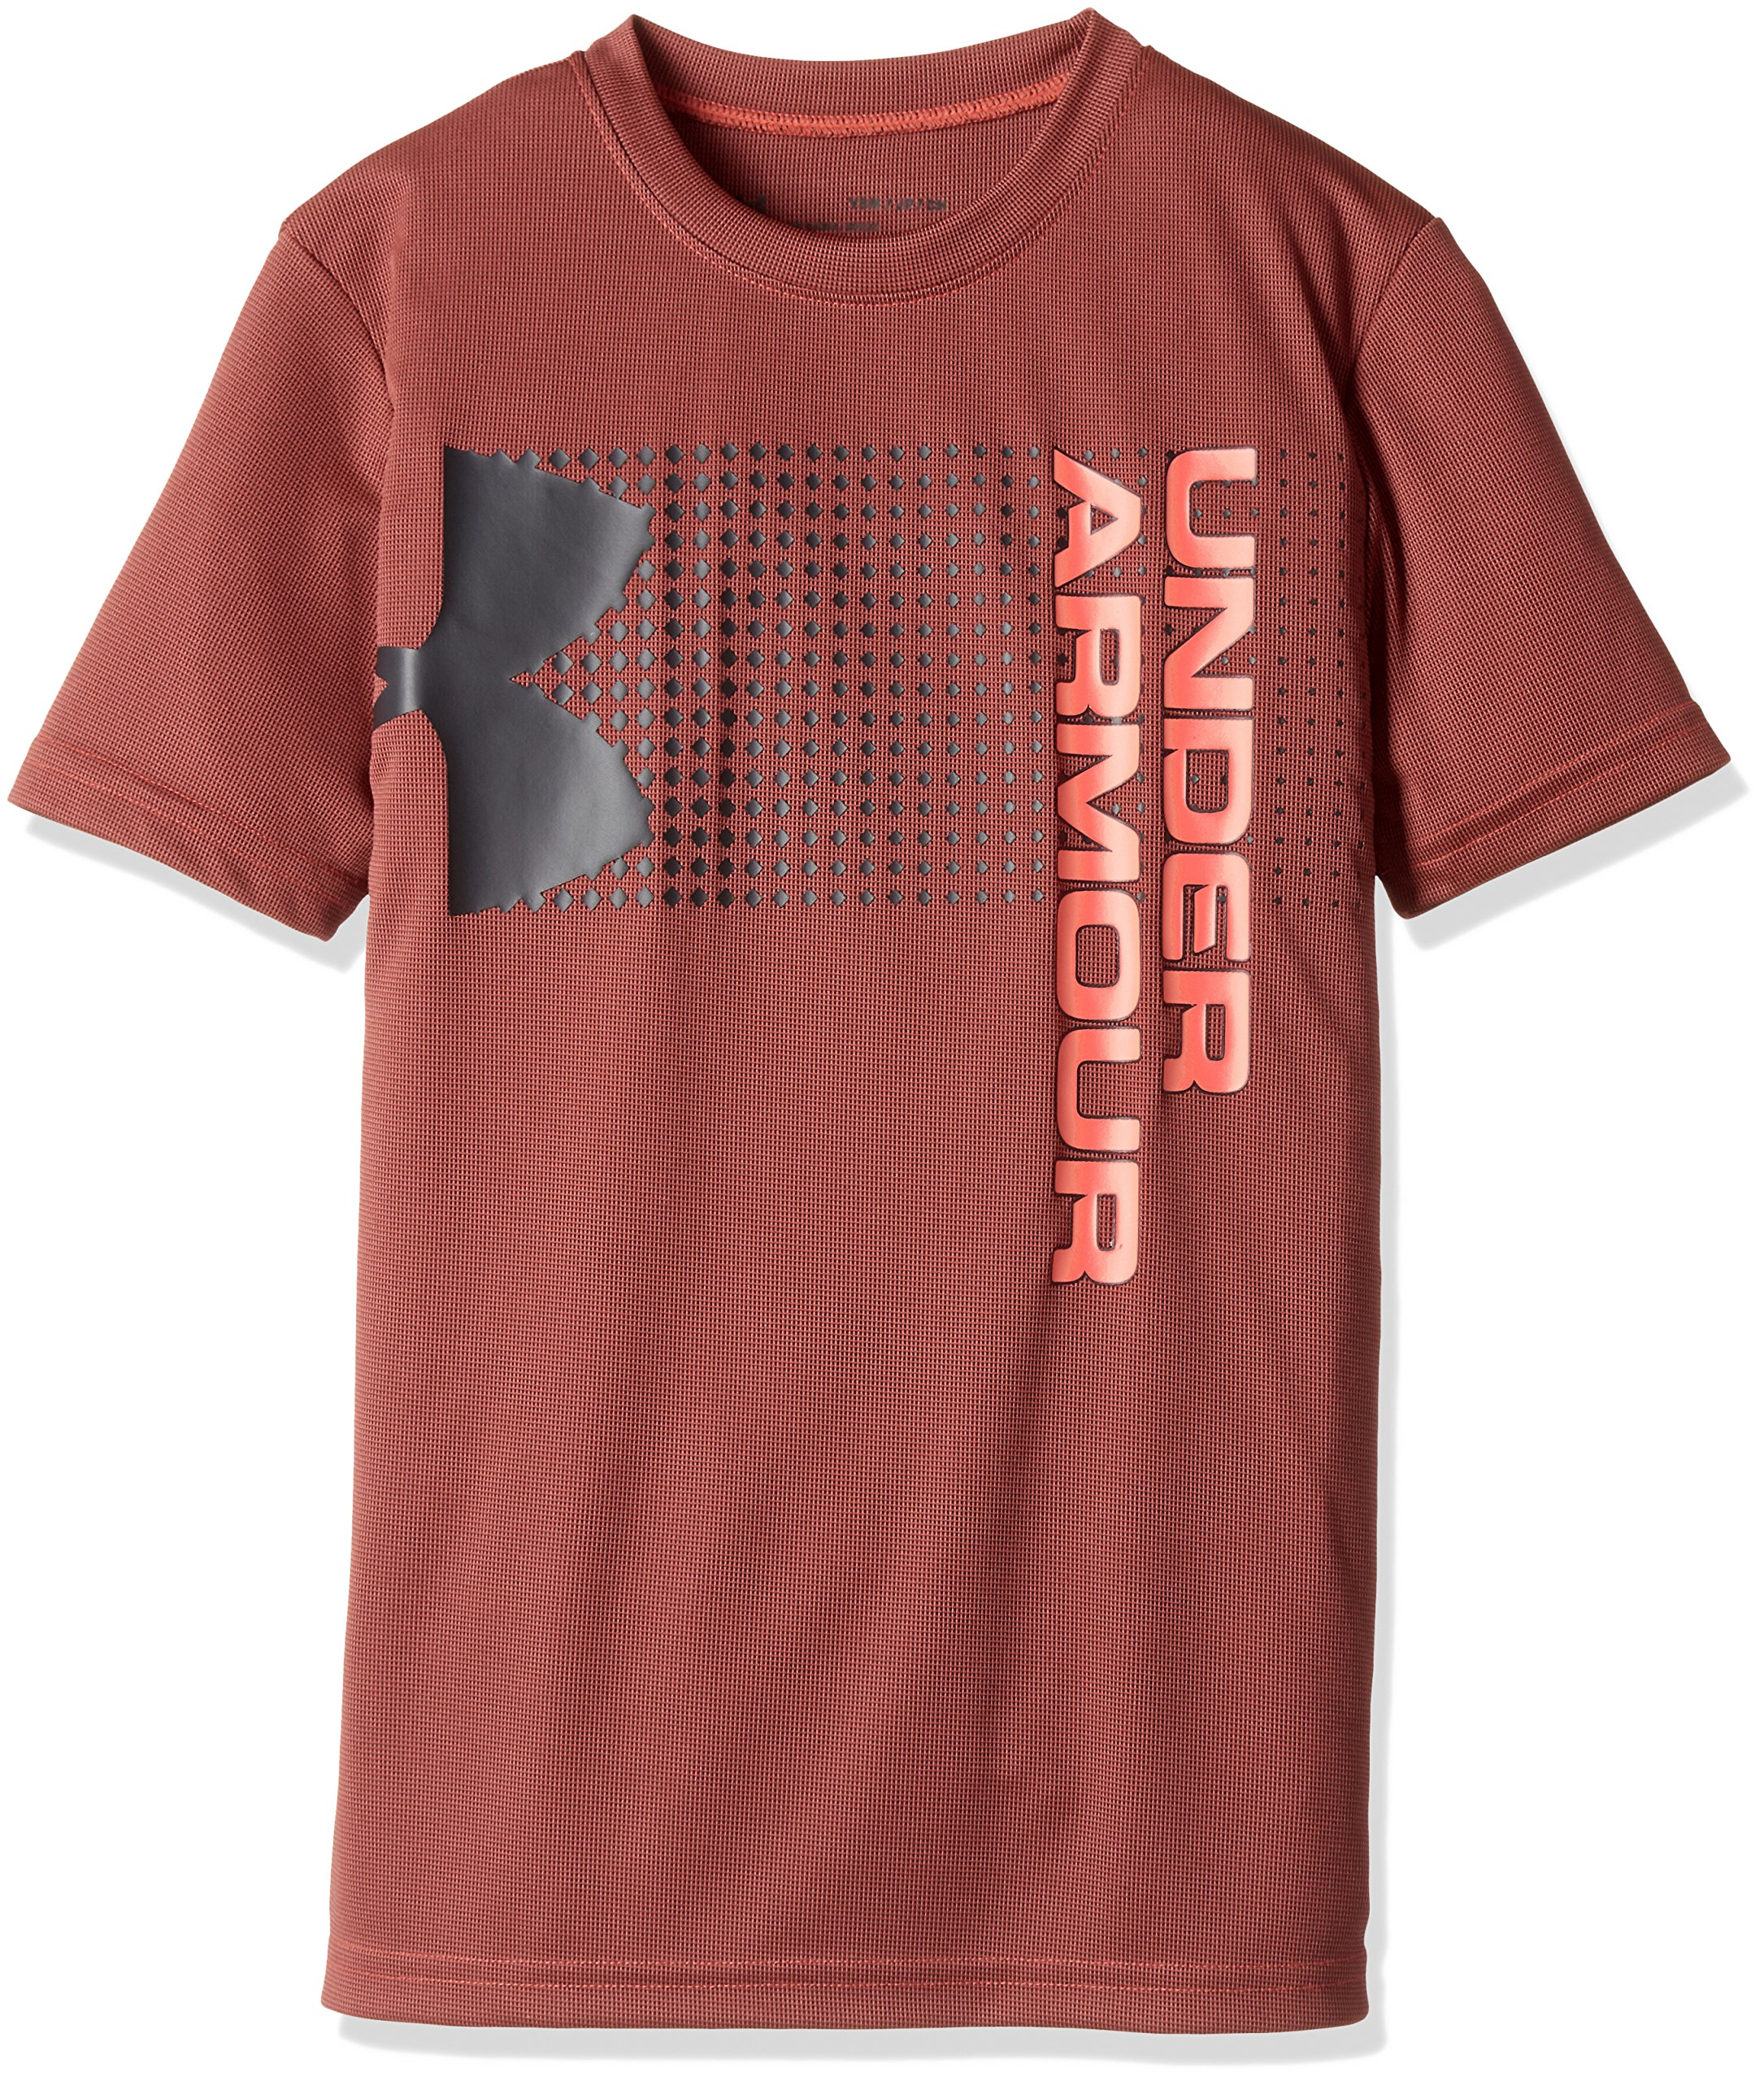 Under Armour Kids Boy's Crossfade Tee (Big Kids) Neon Coral/Stealth Gray/Neon Coral Small by Under Armour (Image #1)